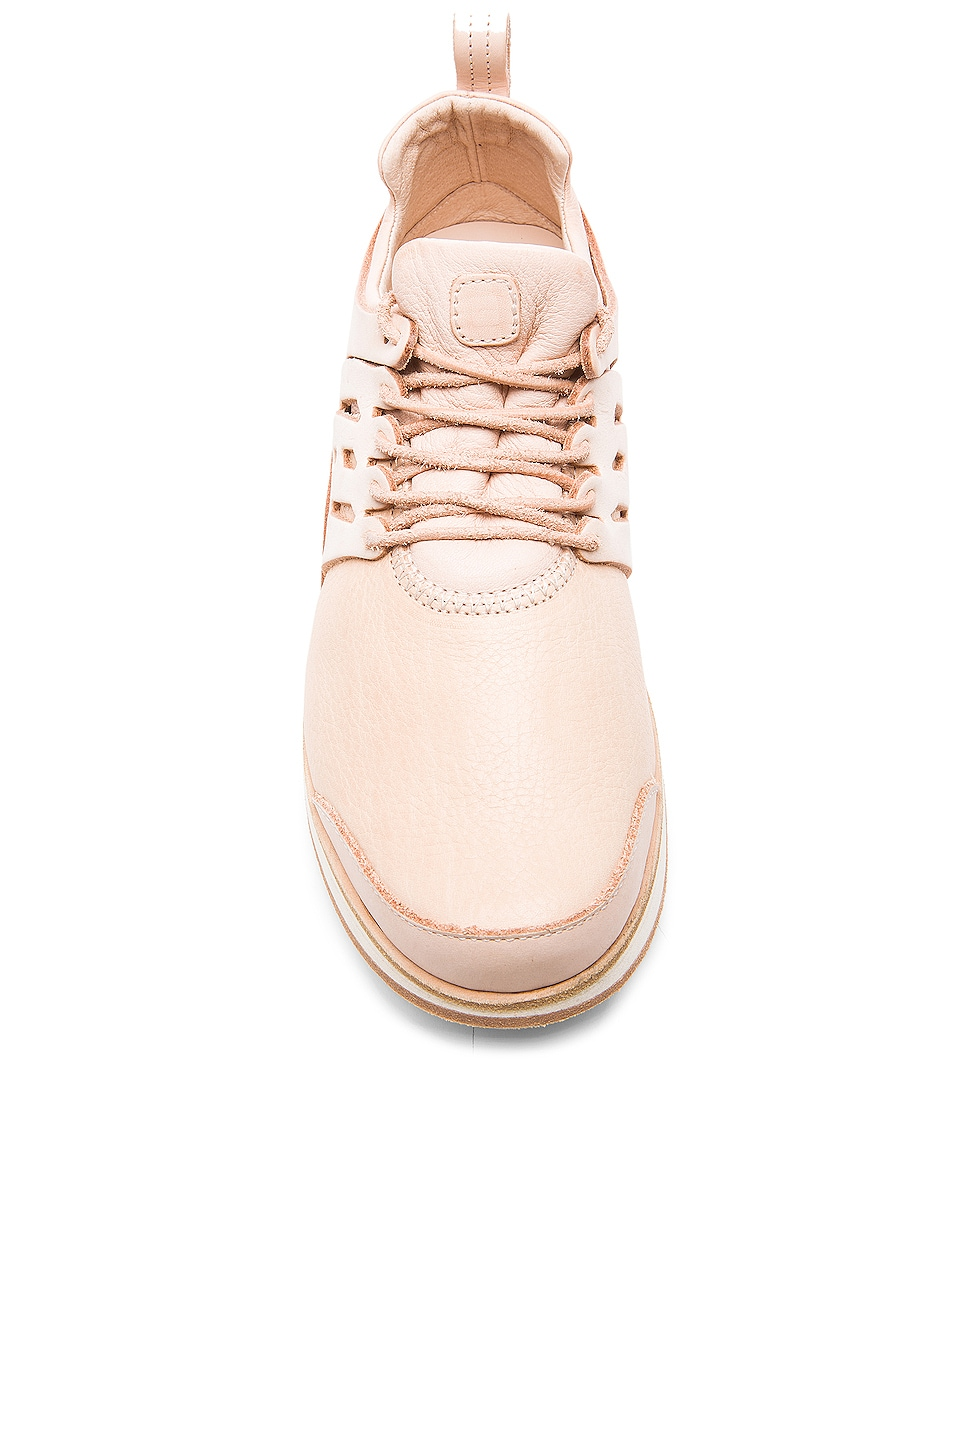 Image 4 of Hender Scheme Manual Industrial Product 12 in Natural